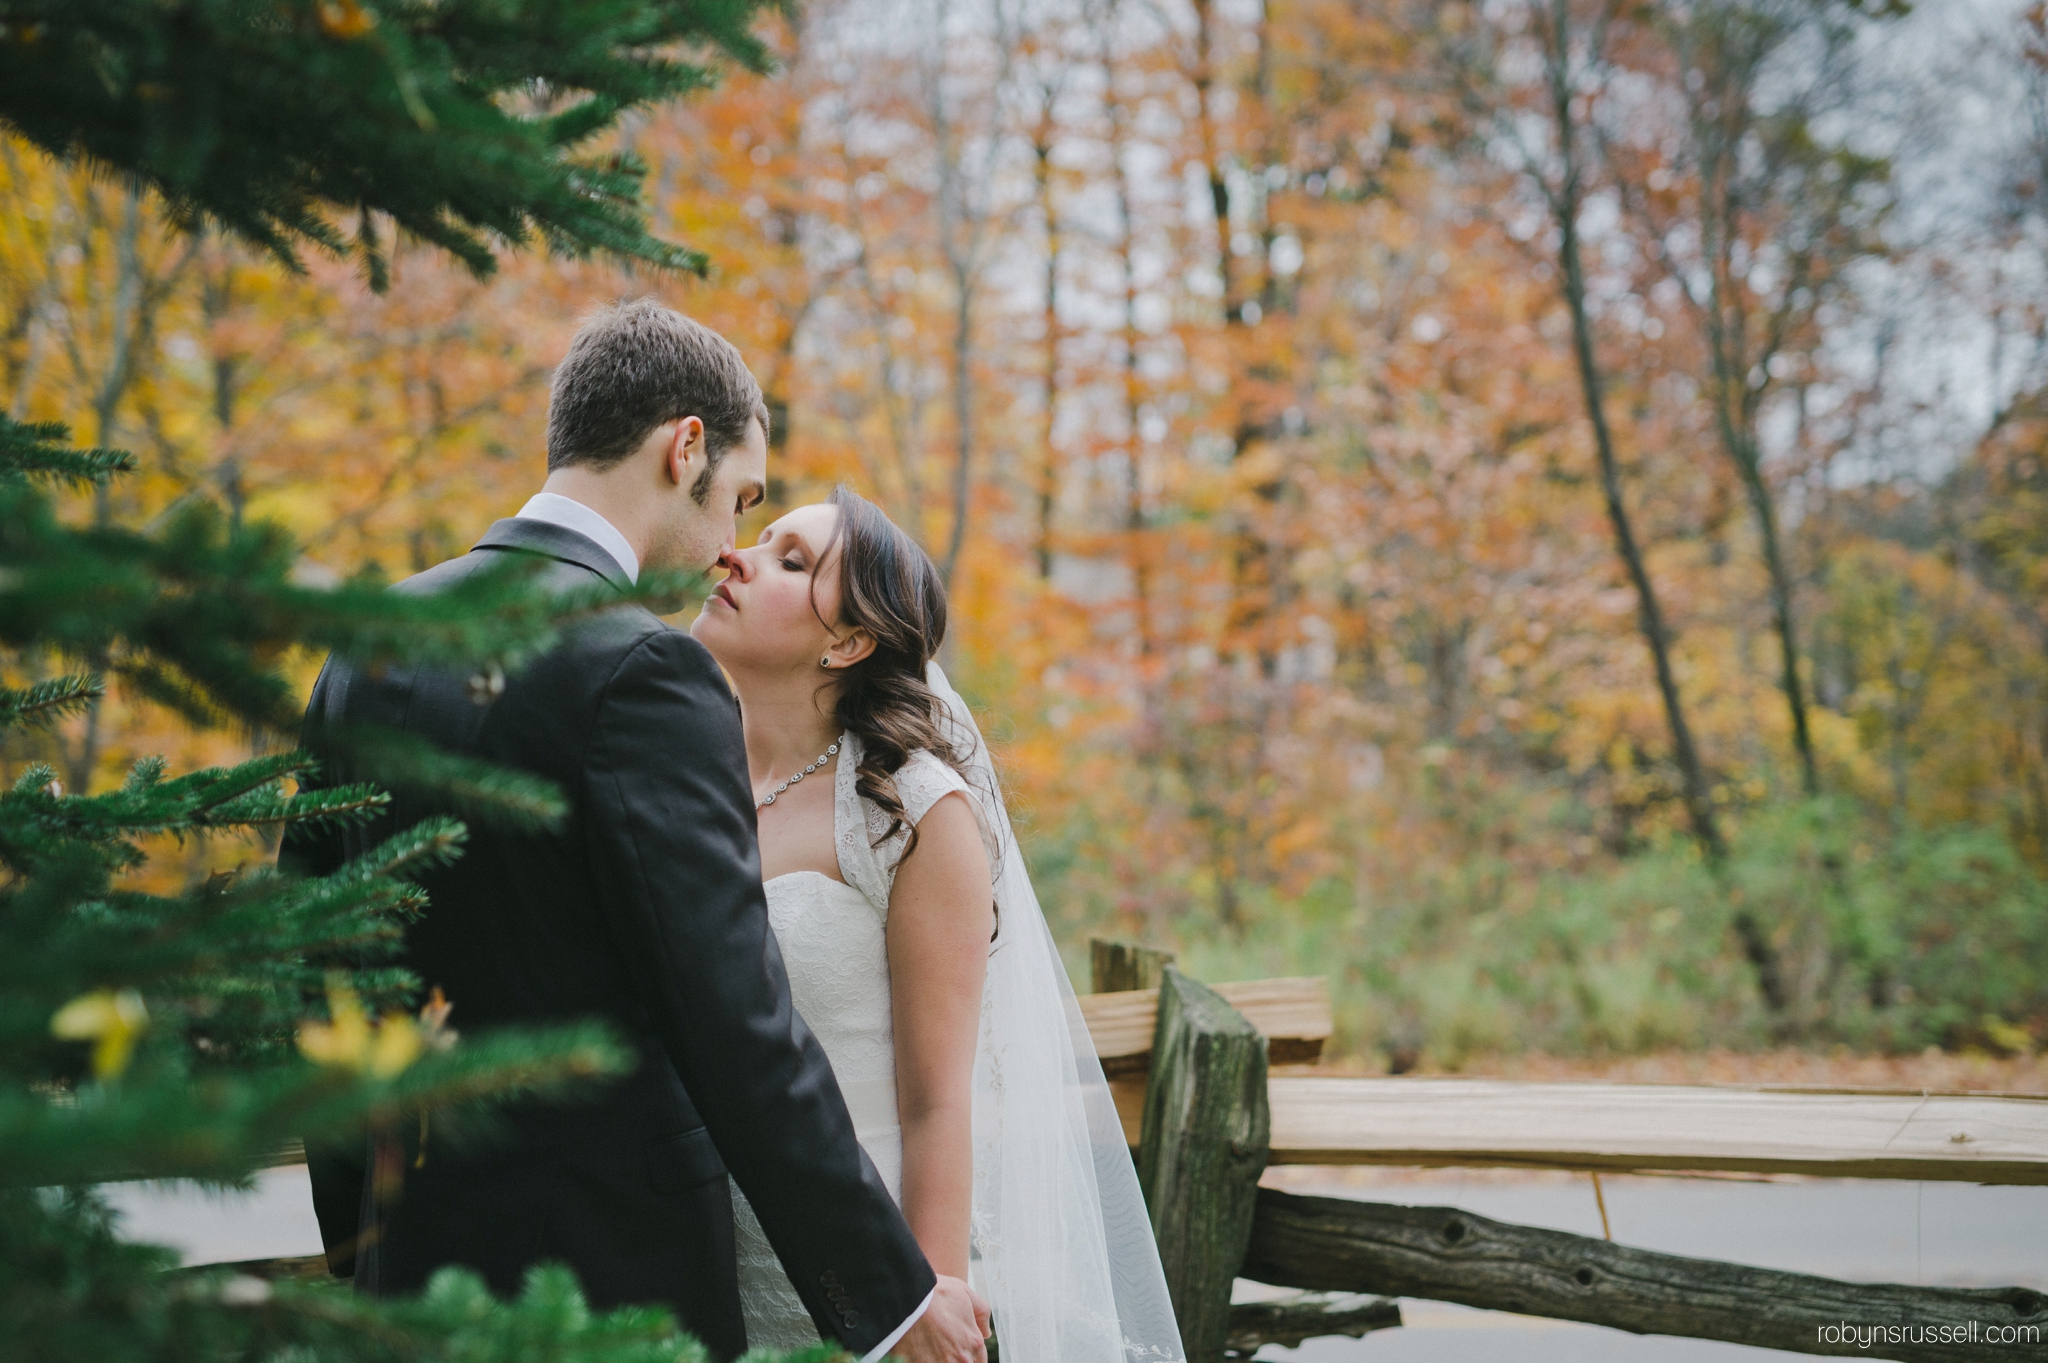 41-bride-and-groom-intimate-moment-fall-canadian-inspired-wedding.jpg